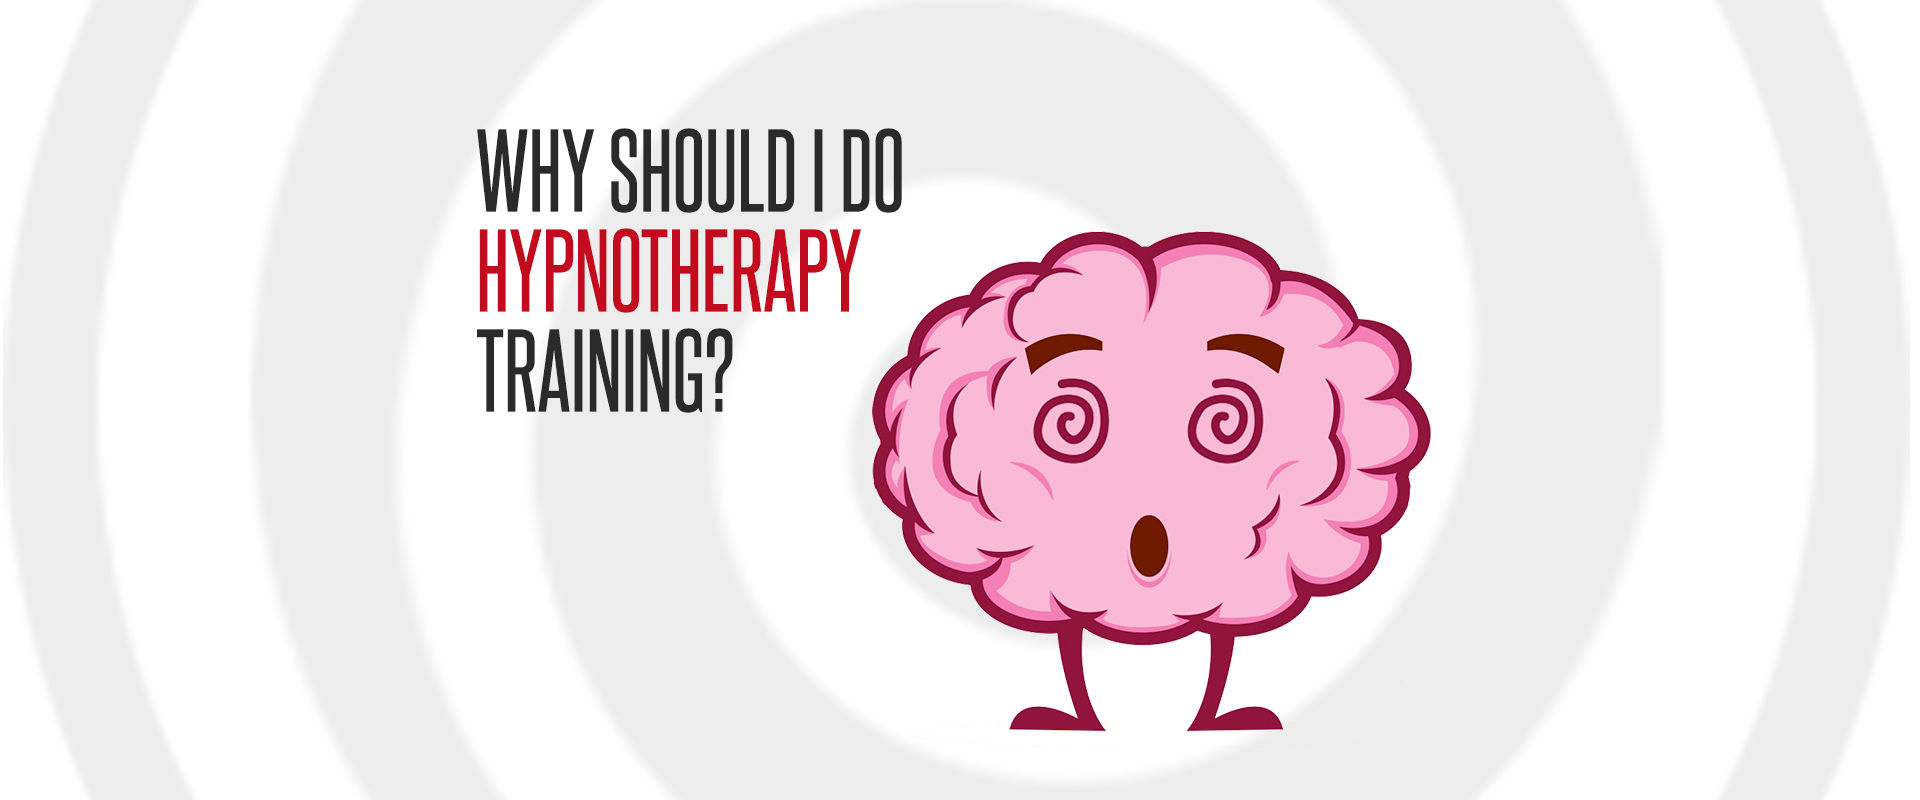 why-should-i-do-hypnotherapy-training-banner